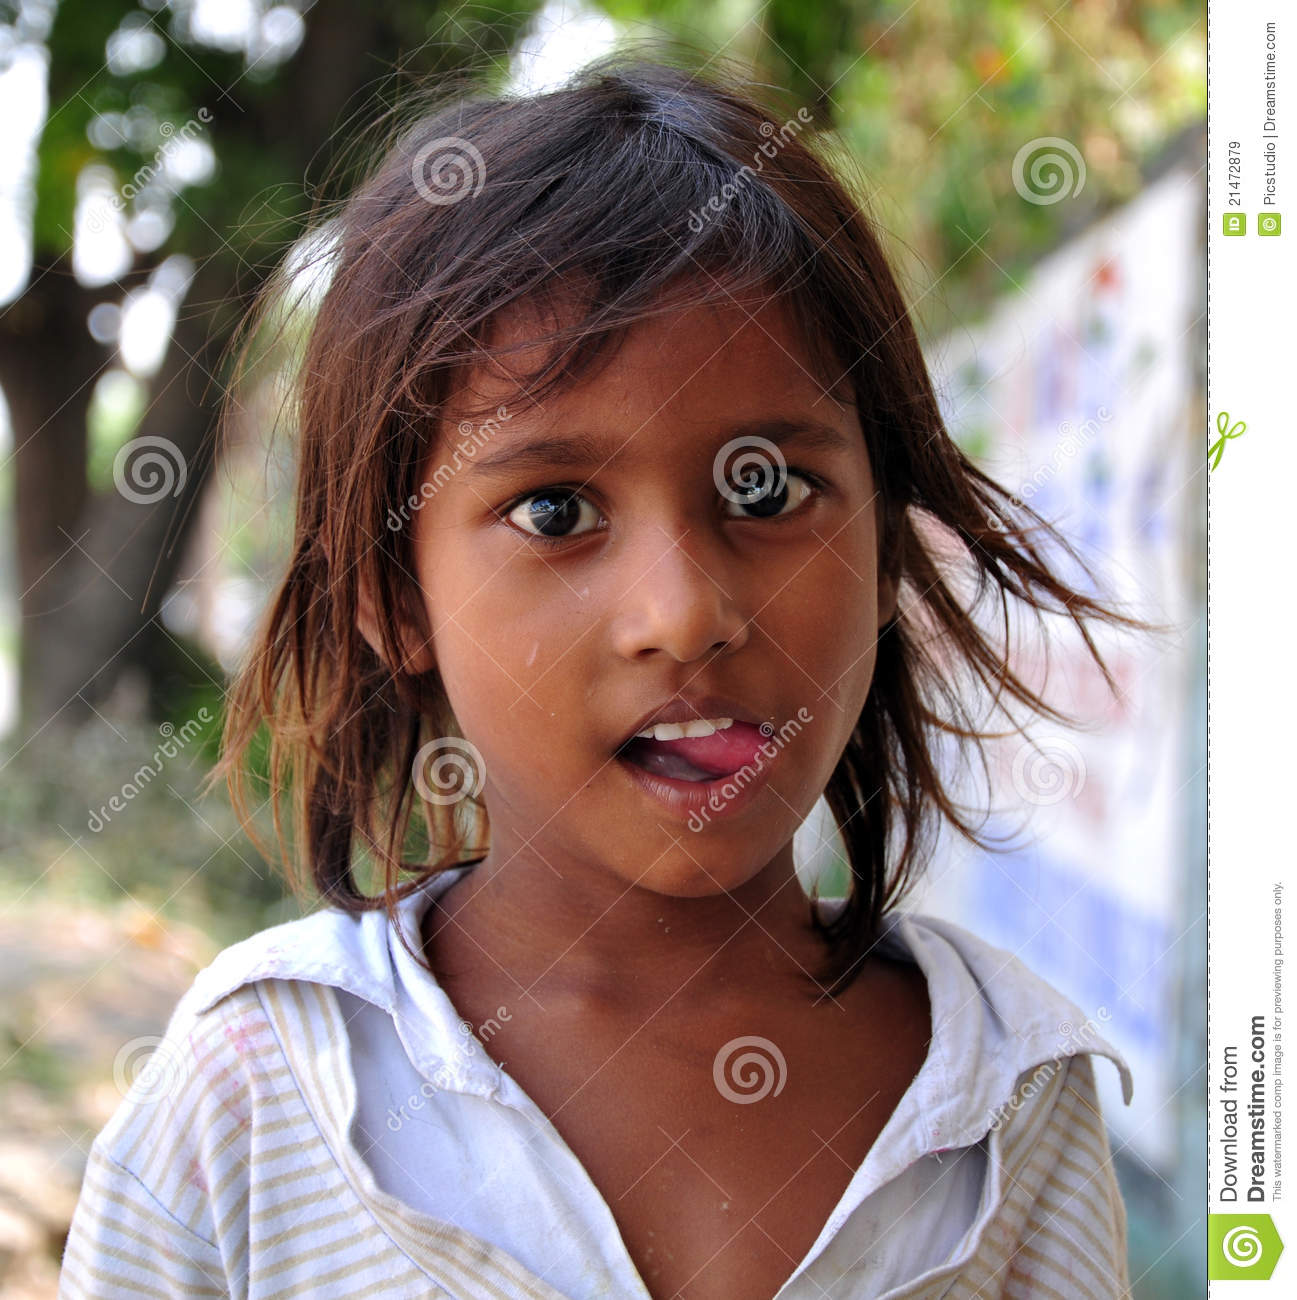 Indian poor naked ledy photo picture 71